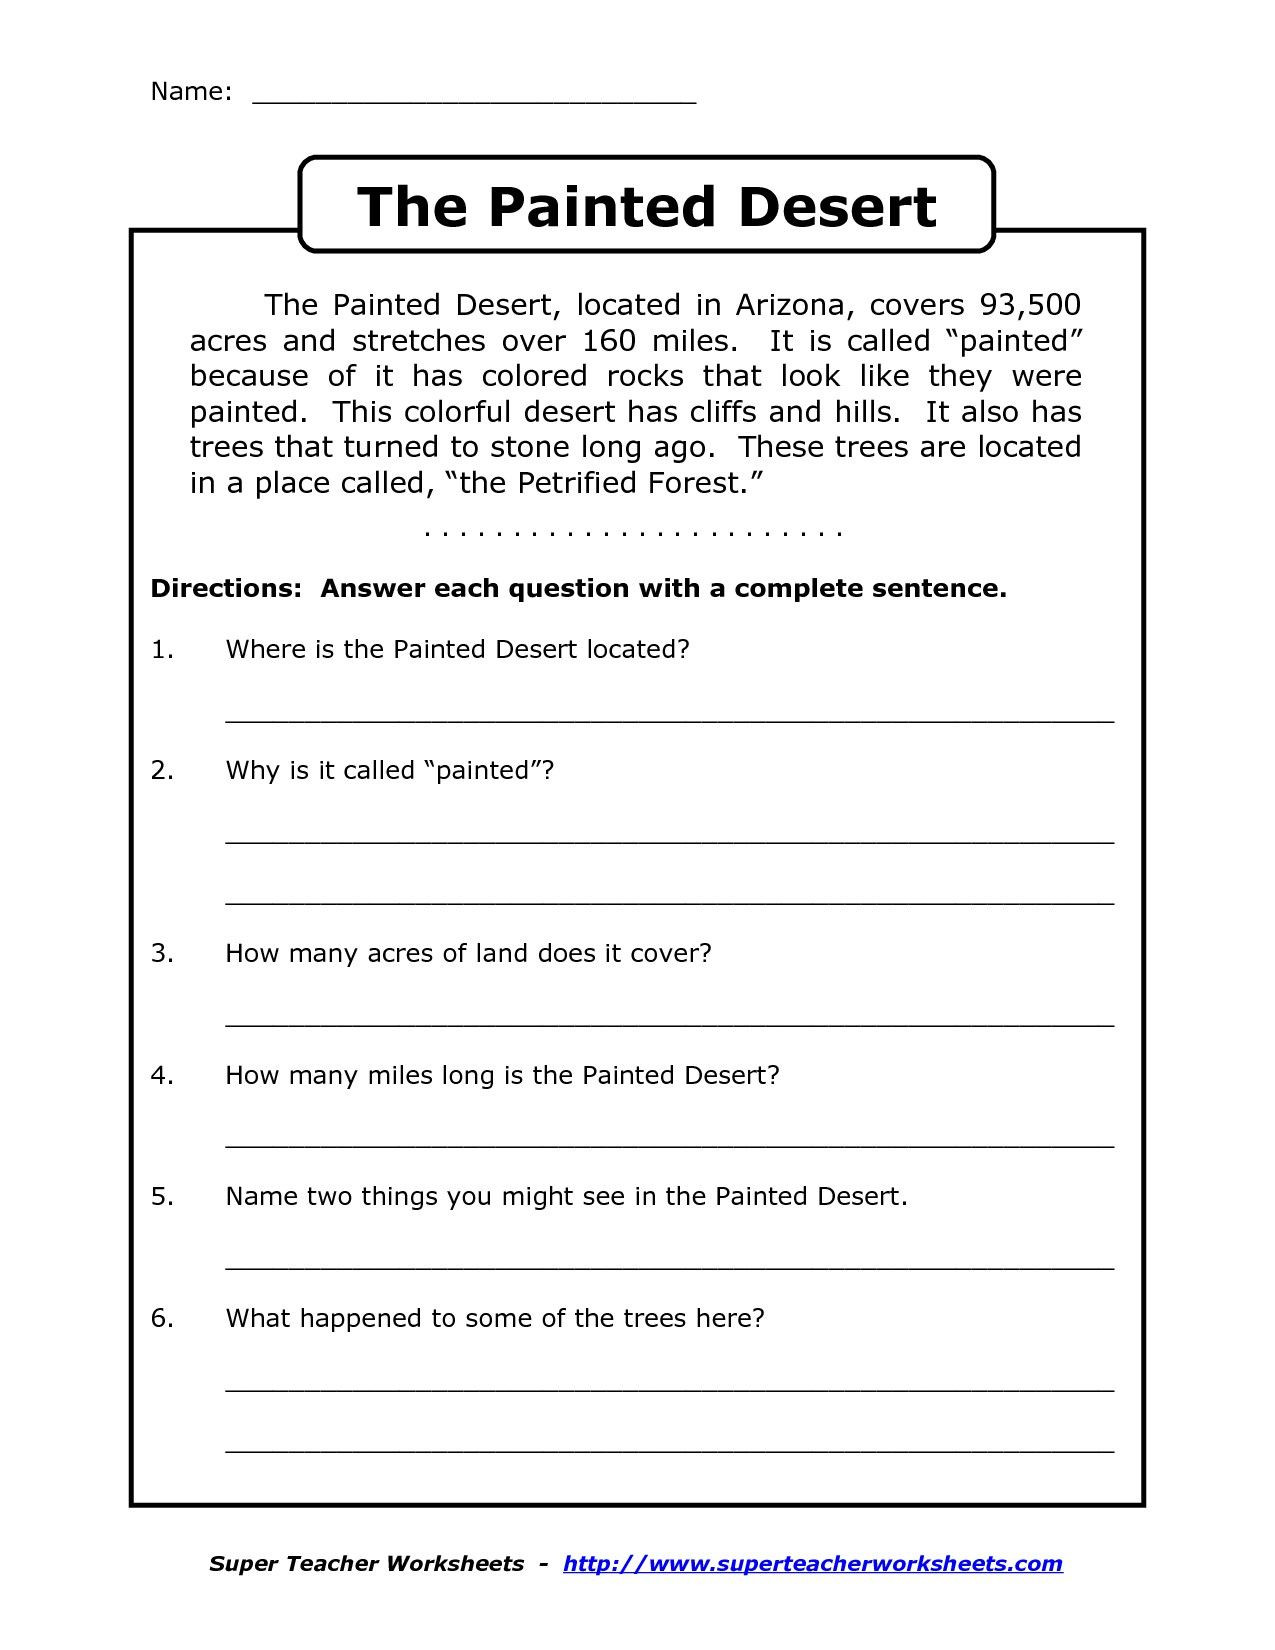 6th Grade Reading Worksheets Printable Prehension Worksheet for 1st Grade Y2 P3 the Painted